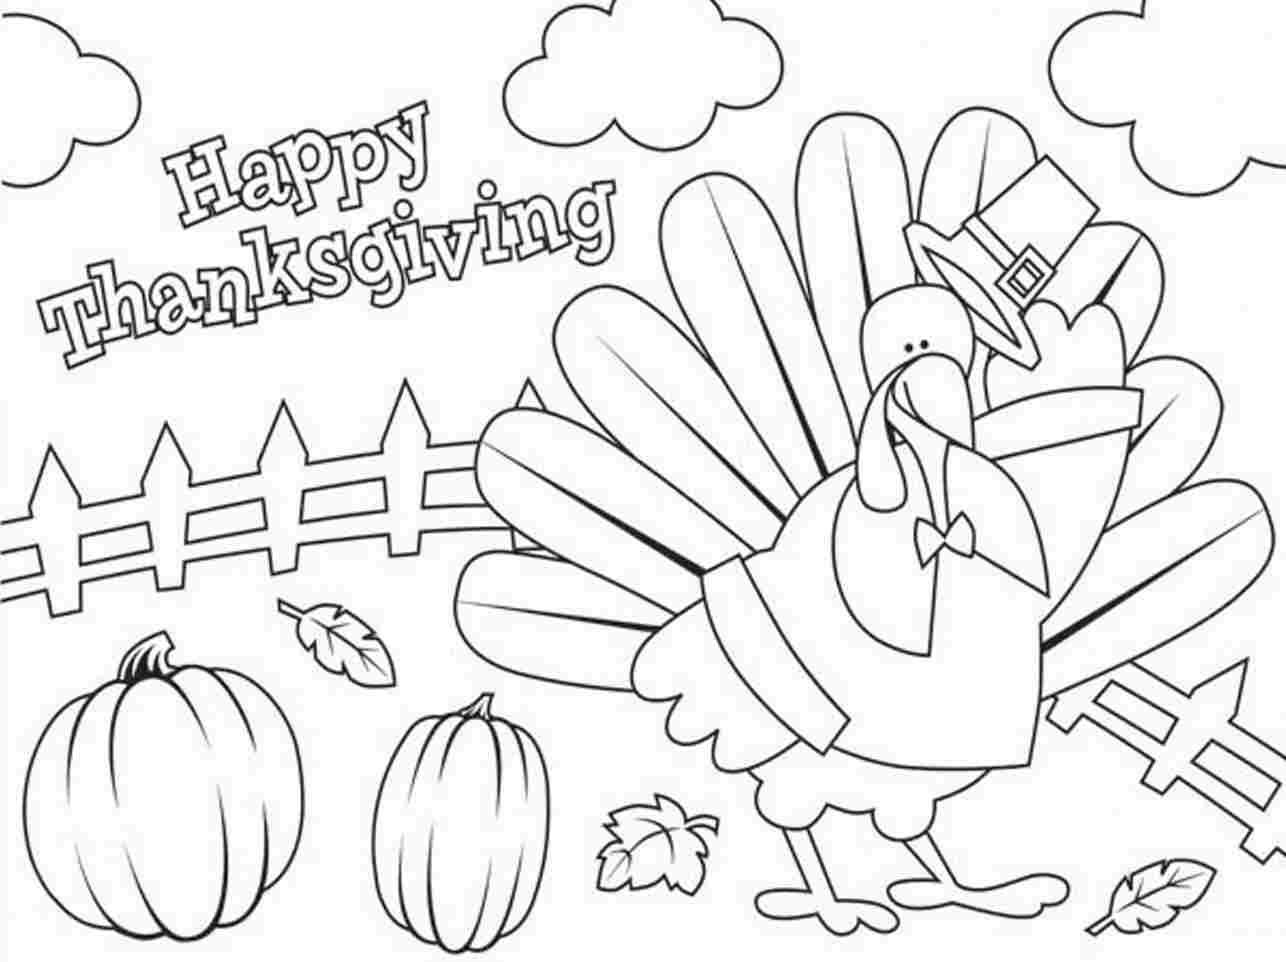 thanksgiving coloring pages free printable - Thanksgiving Turkey Coloring Pages